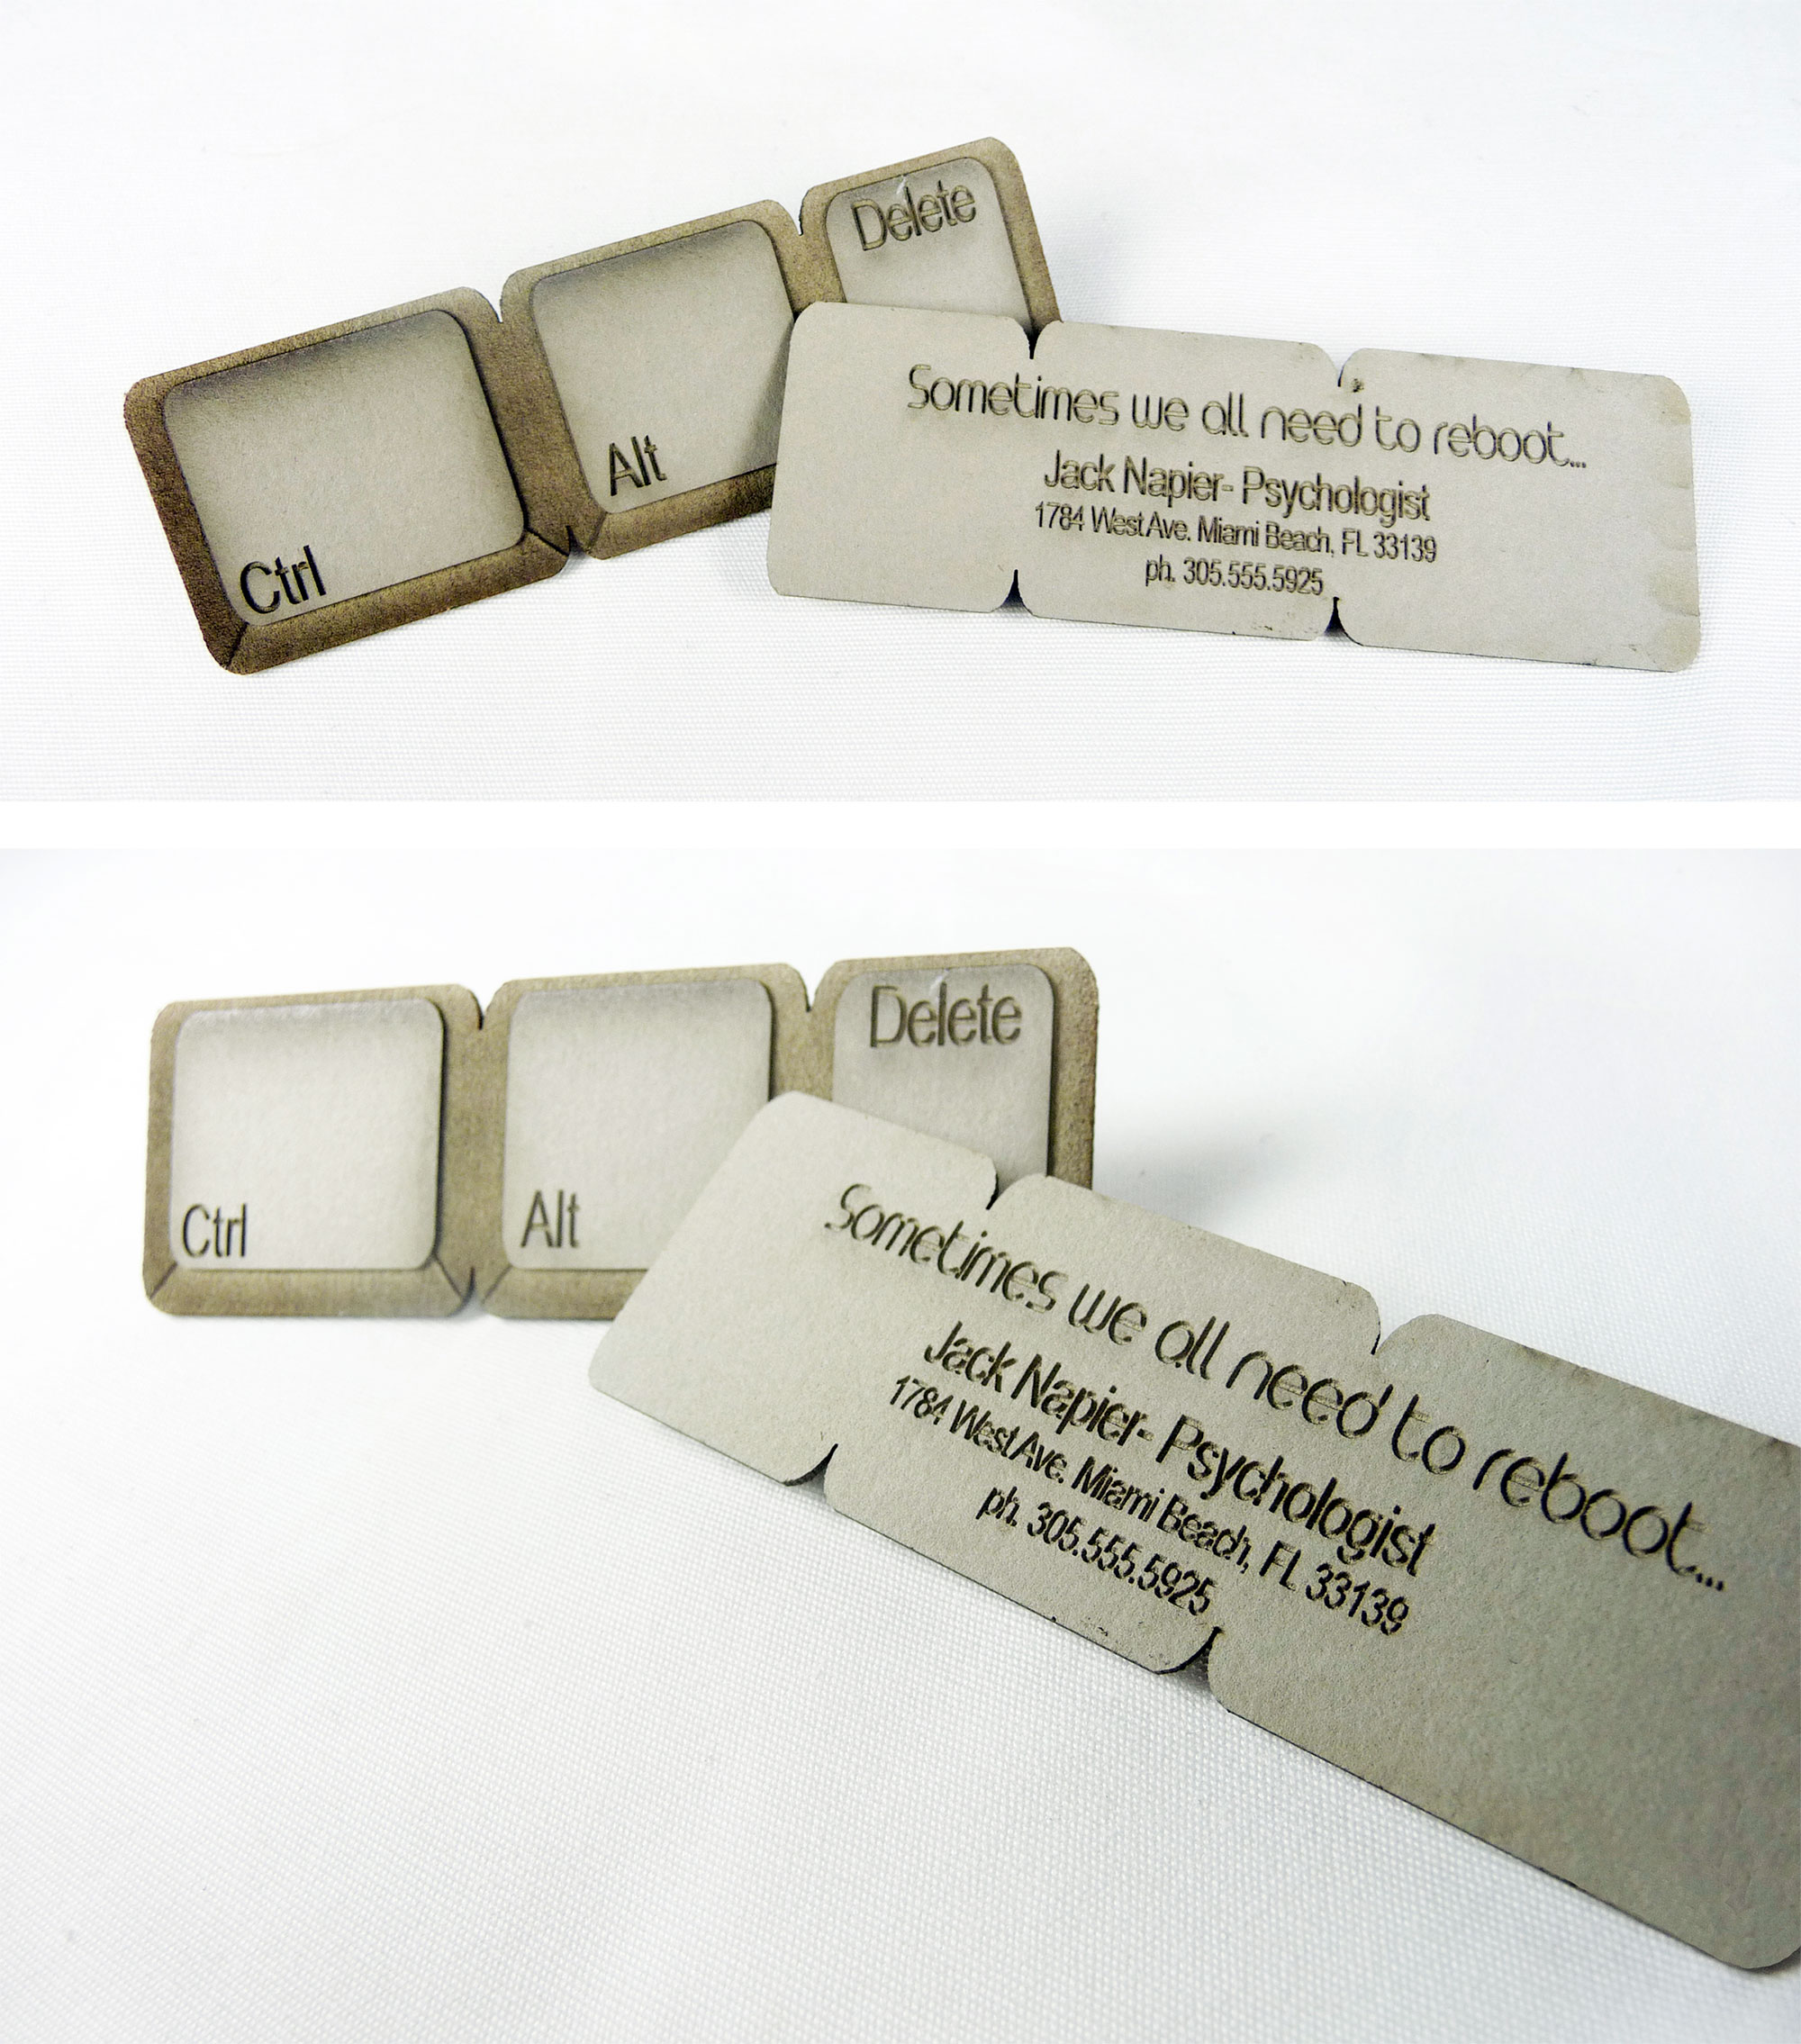 Ctrl-Alt-Delete Business Card